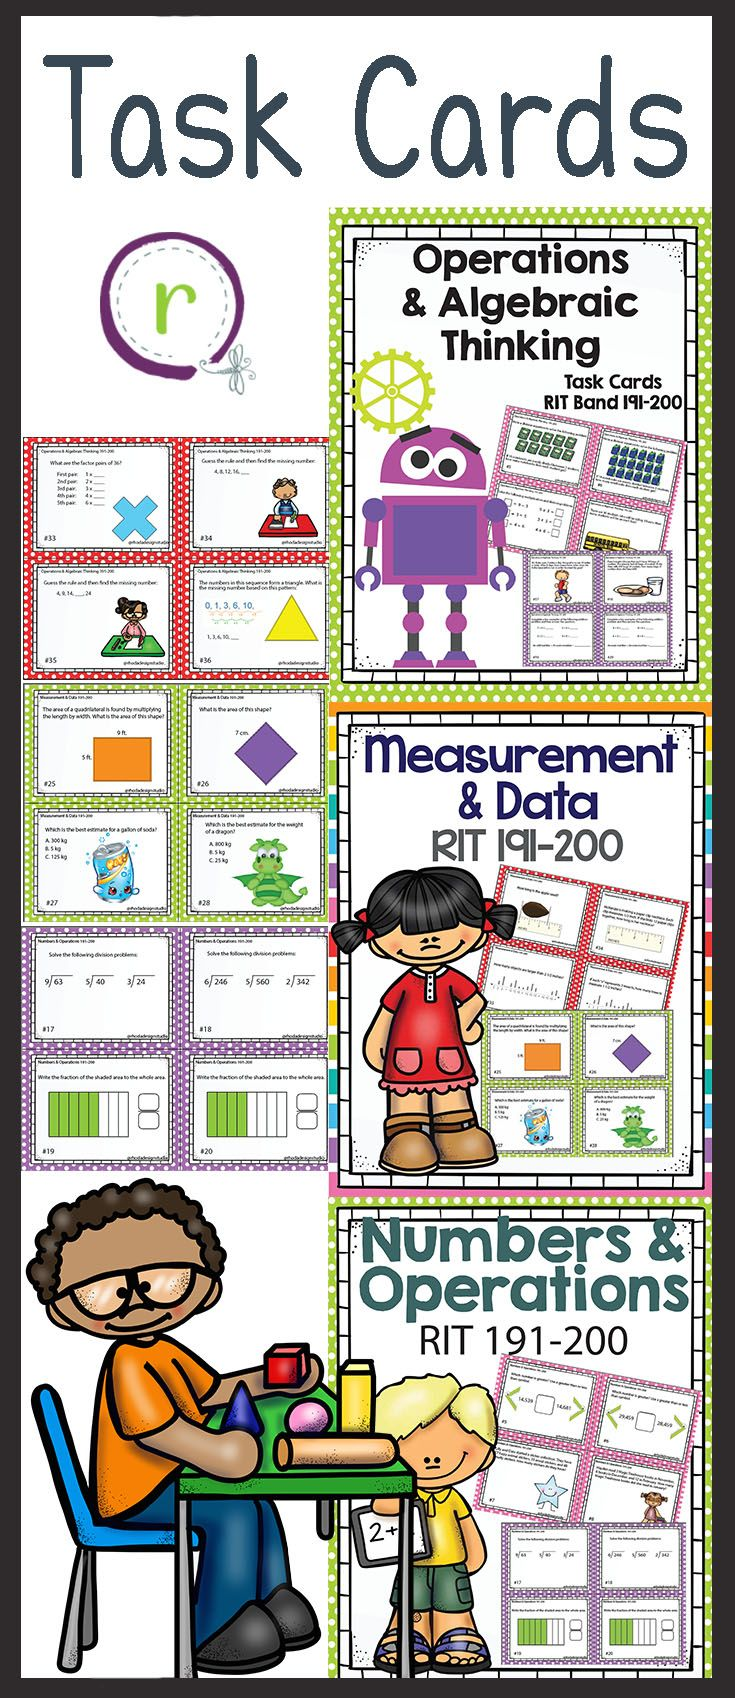 These task cards cover the skills for the NWEA RIT Band 191-200: Operations and Algebraic Thinking, Numbers and Operations, and Measurement and Data.   These math task cards can be used as review, independent centers, or to assess skills that your students need to master.  Even if your school doesn't use MAP testing, these task cards make great review, practice and interventions for 2nd and 3rd grade or remedial practice for 4th grade.